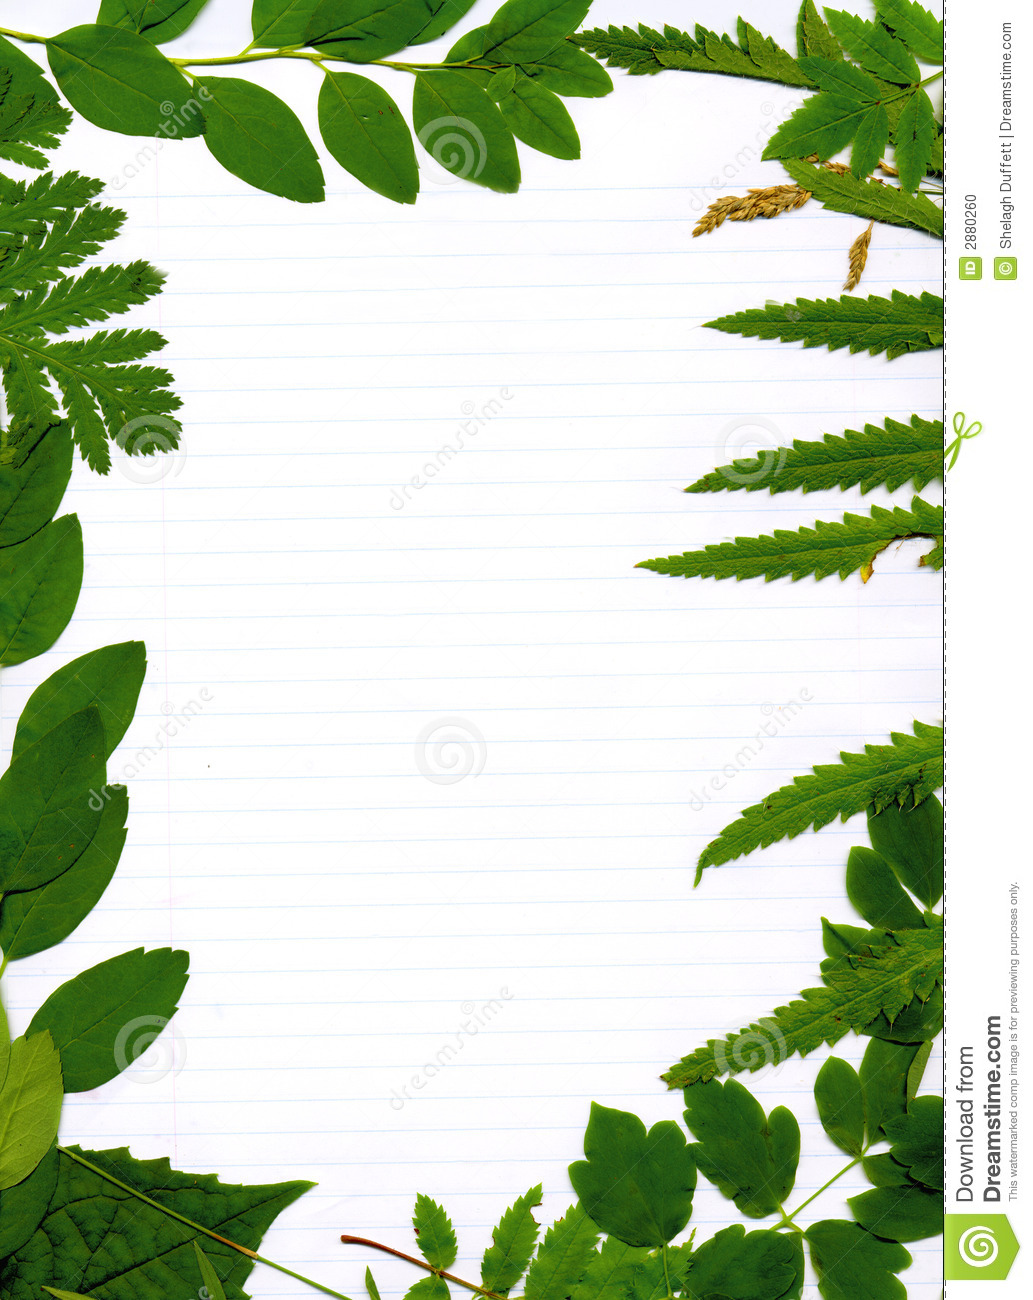 Green Leafy Natural Border on Camping Color Pages